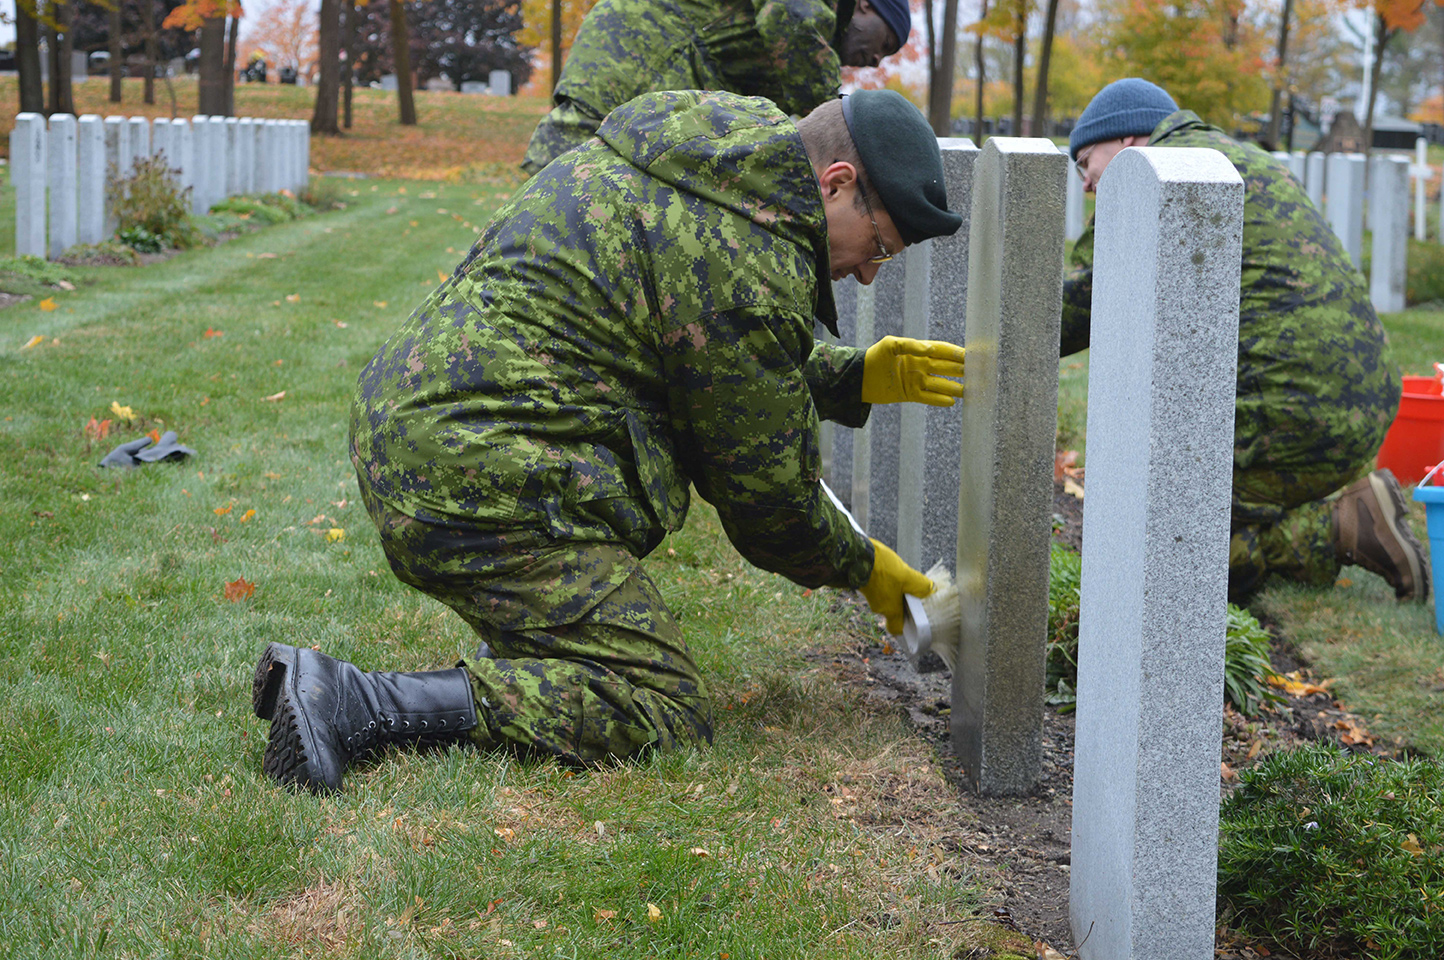 Major François Bak cleans veterans' headstones at the National Military Cemetery in Ottawa on Oct. 27. Photo by: Jeanne Gagnon, Guard of Honour Newspaper